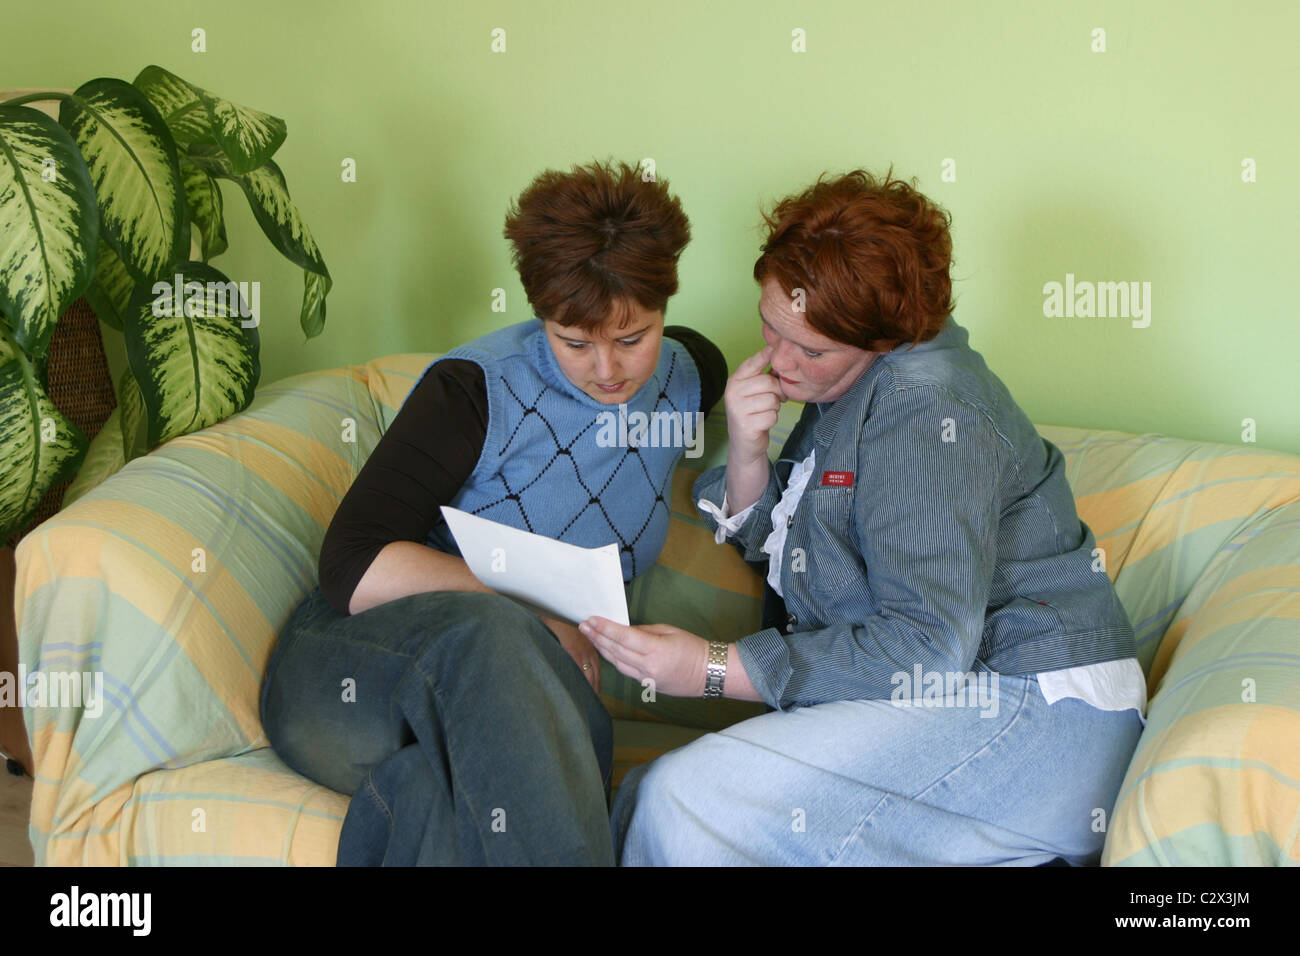 Women on sofa reading contract or written letter on sofa. Th ladies are looking together at the paper holding in - Stock Image